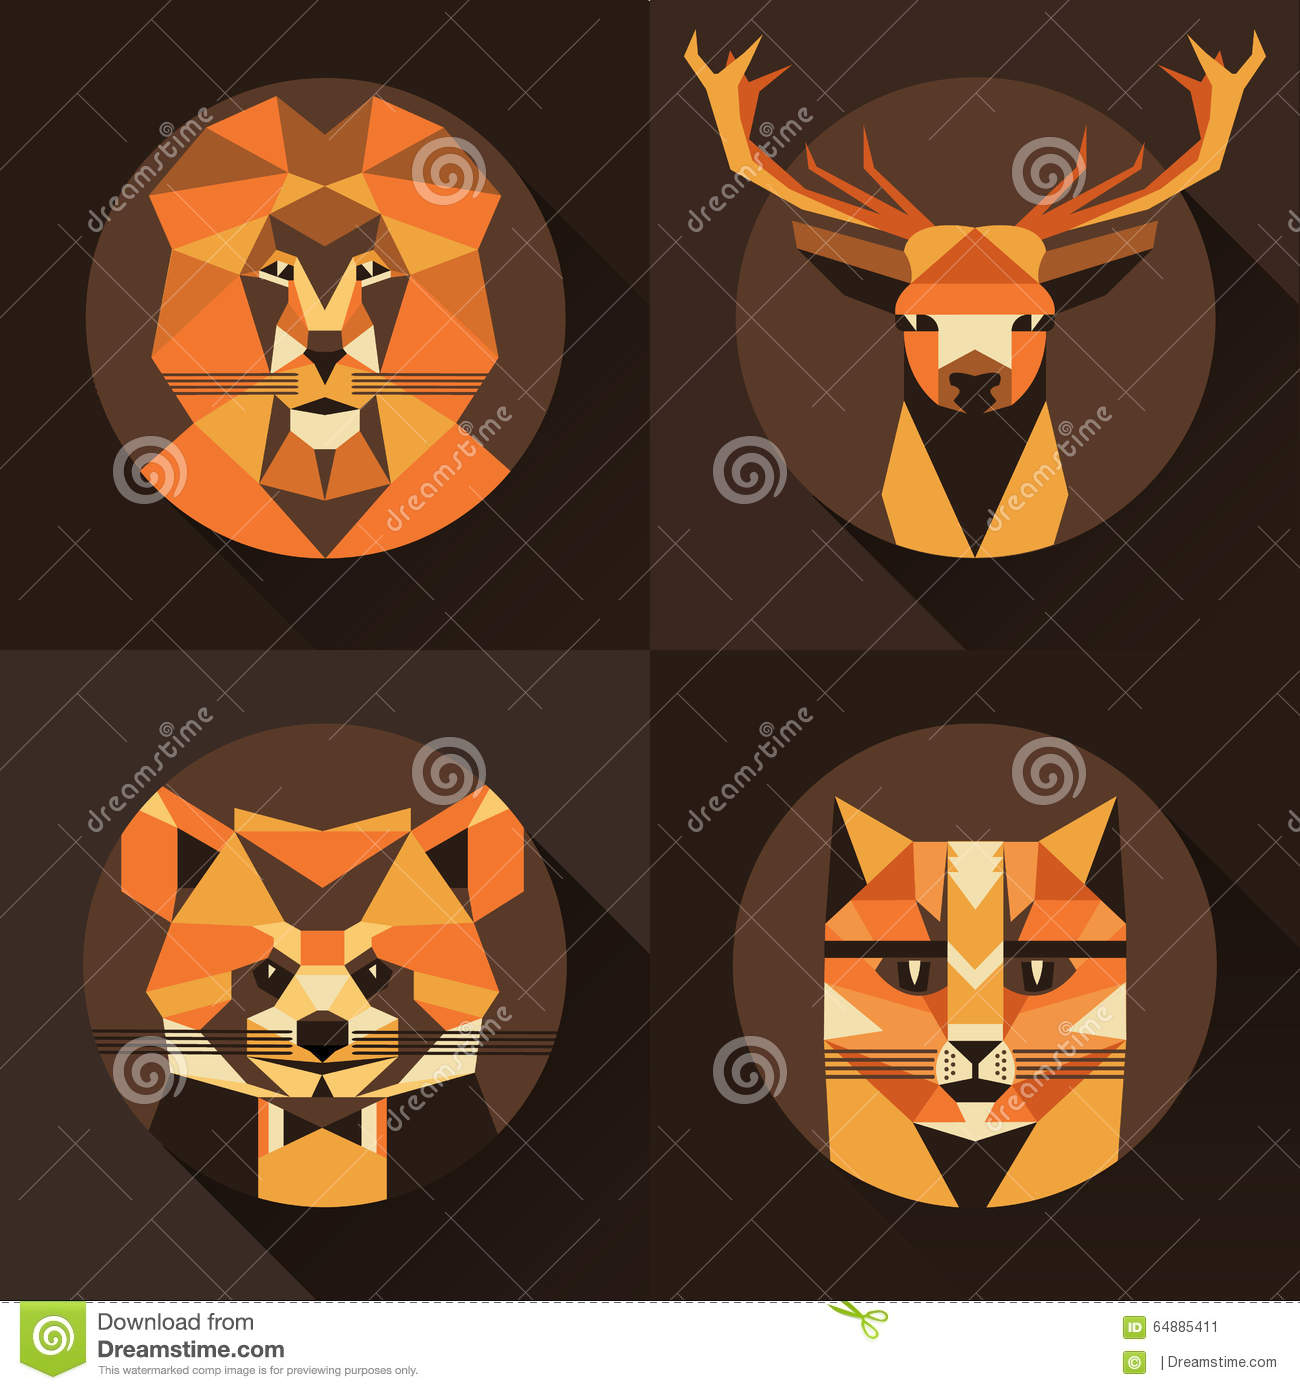 Avatar 2 Animals: Flat Trendy Low Polygon Style Animal Avatar Icon Set